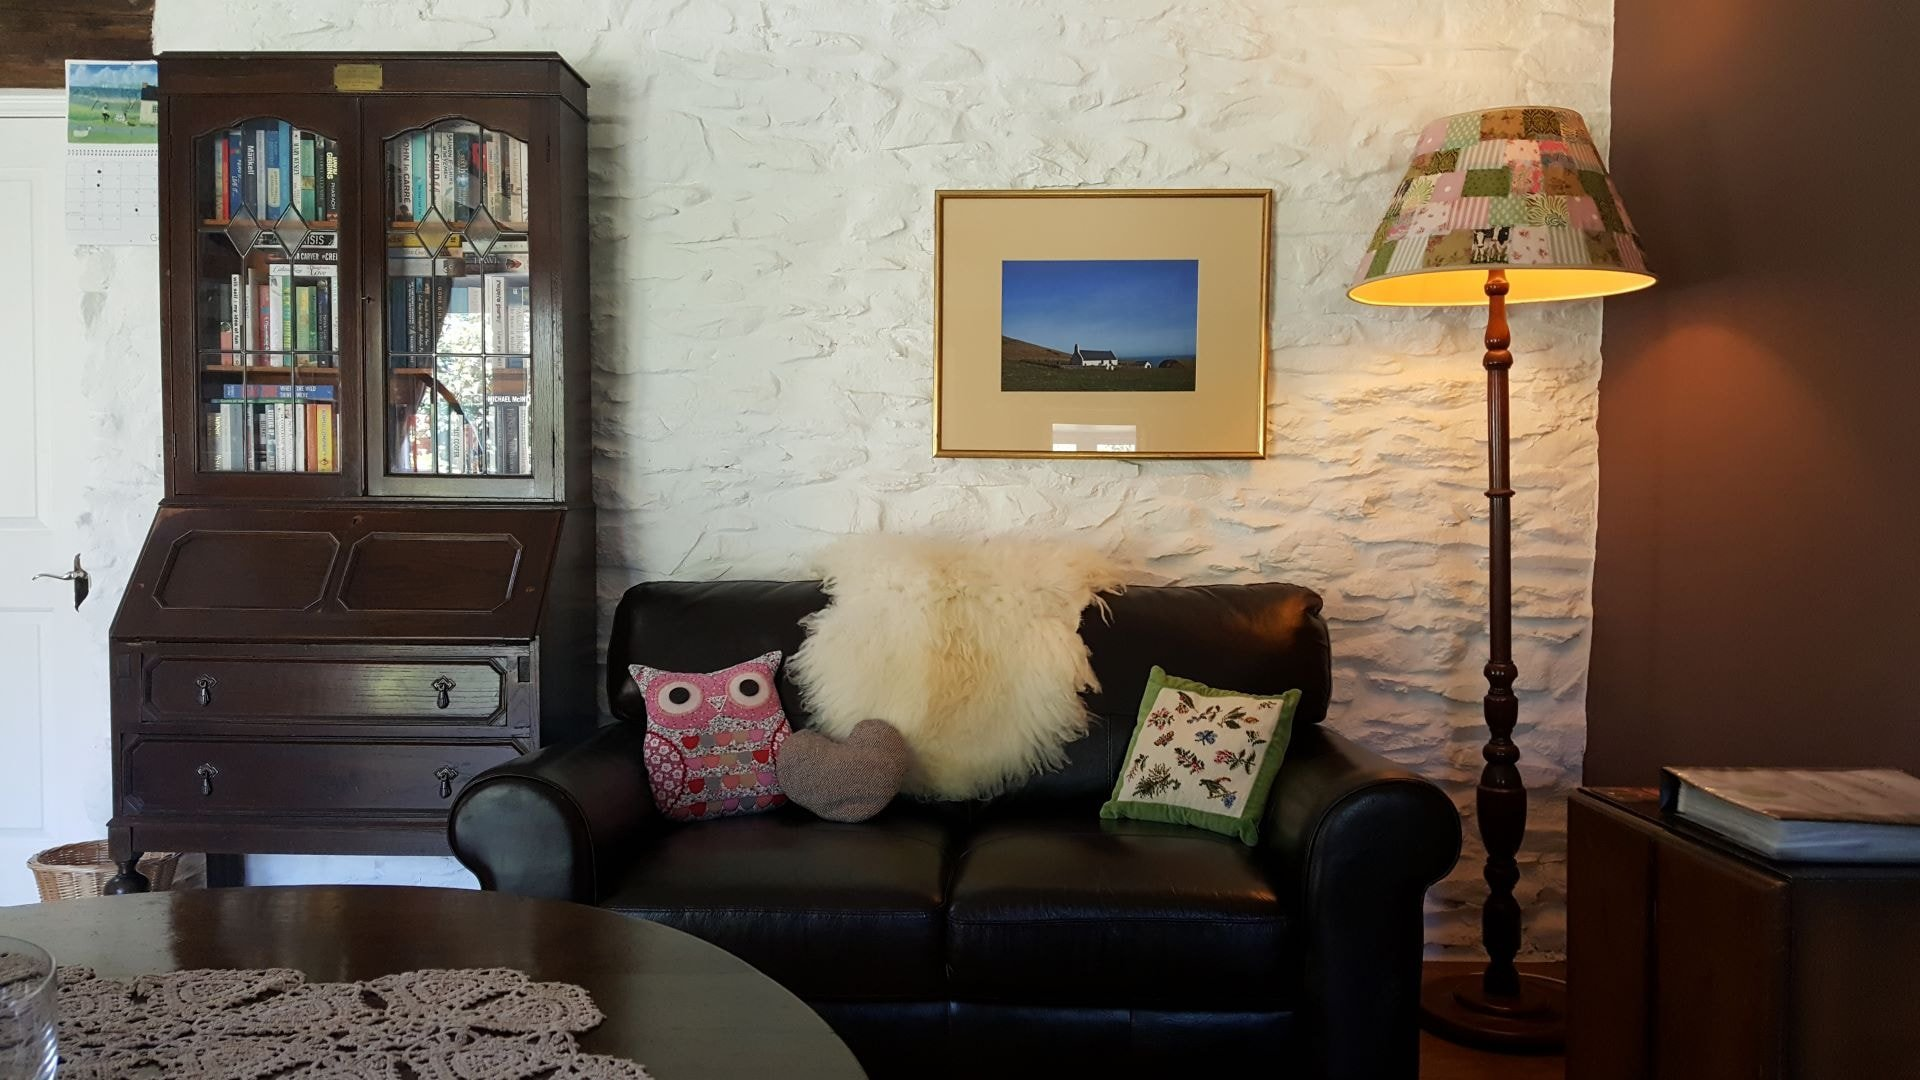 Hen Ffermdy holiday cottage interior - reading corner with sofa